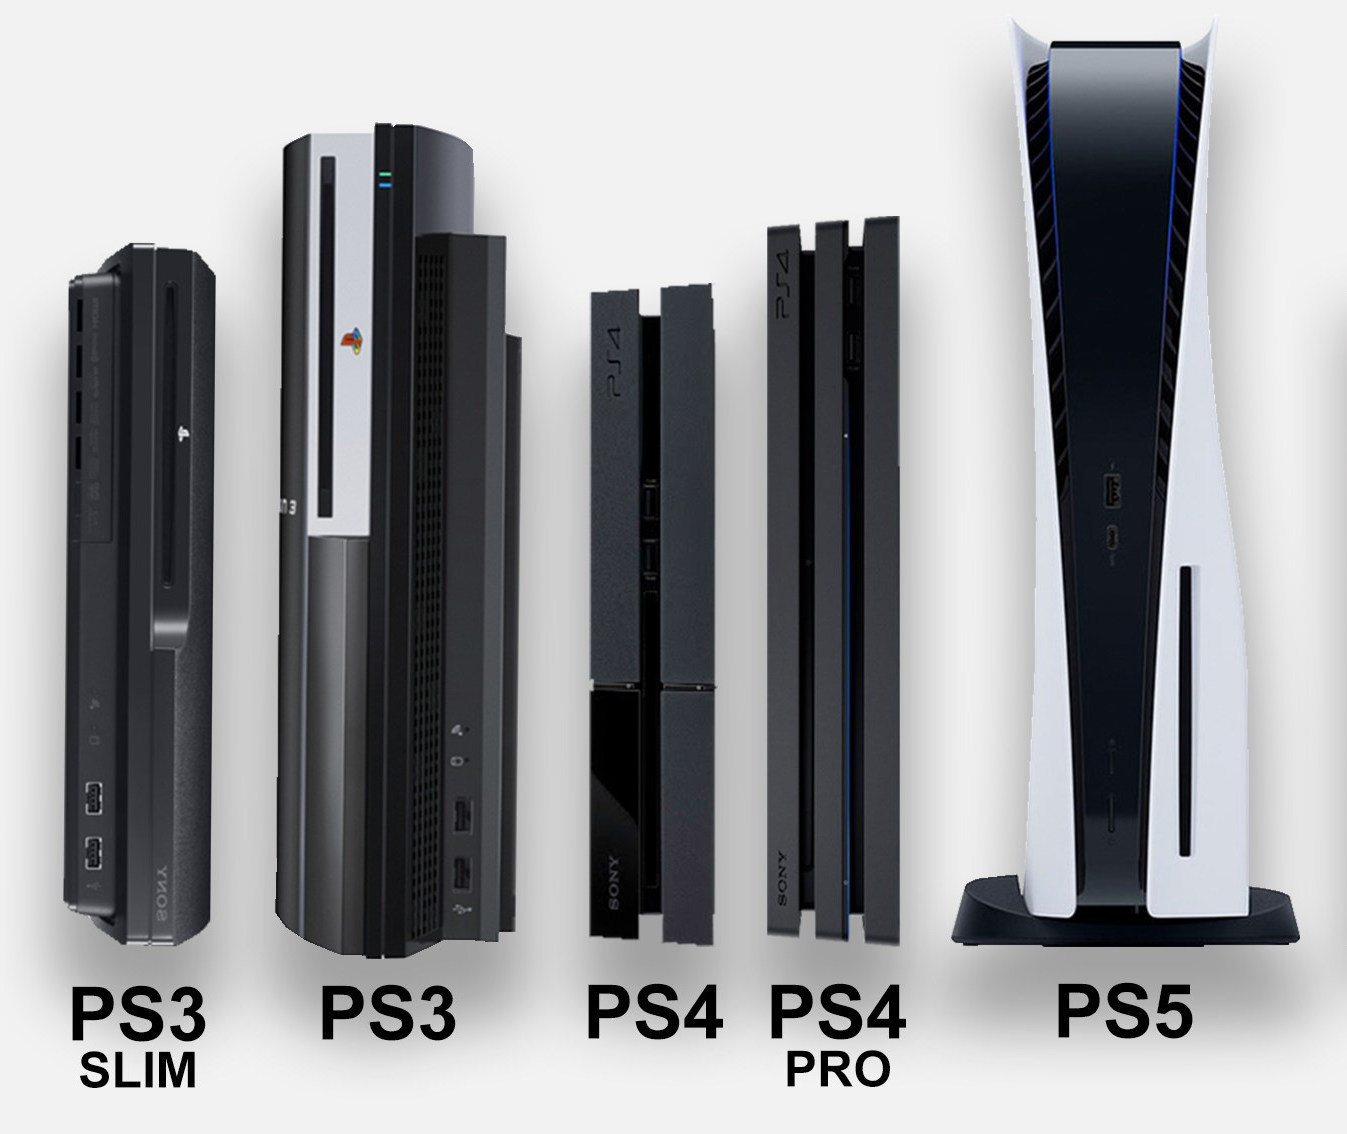 PlayStation 5: Sony gently prepares for a high price